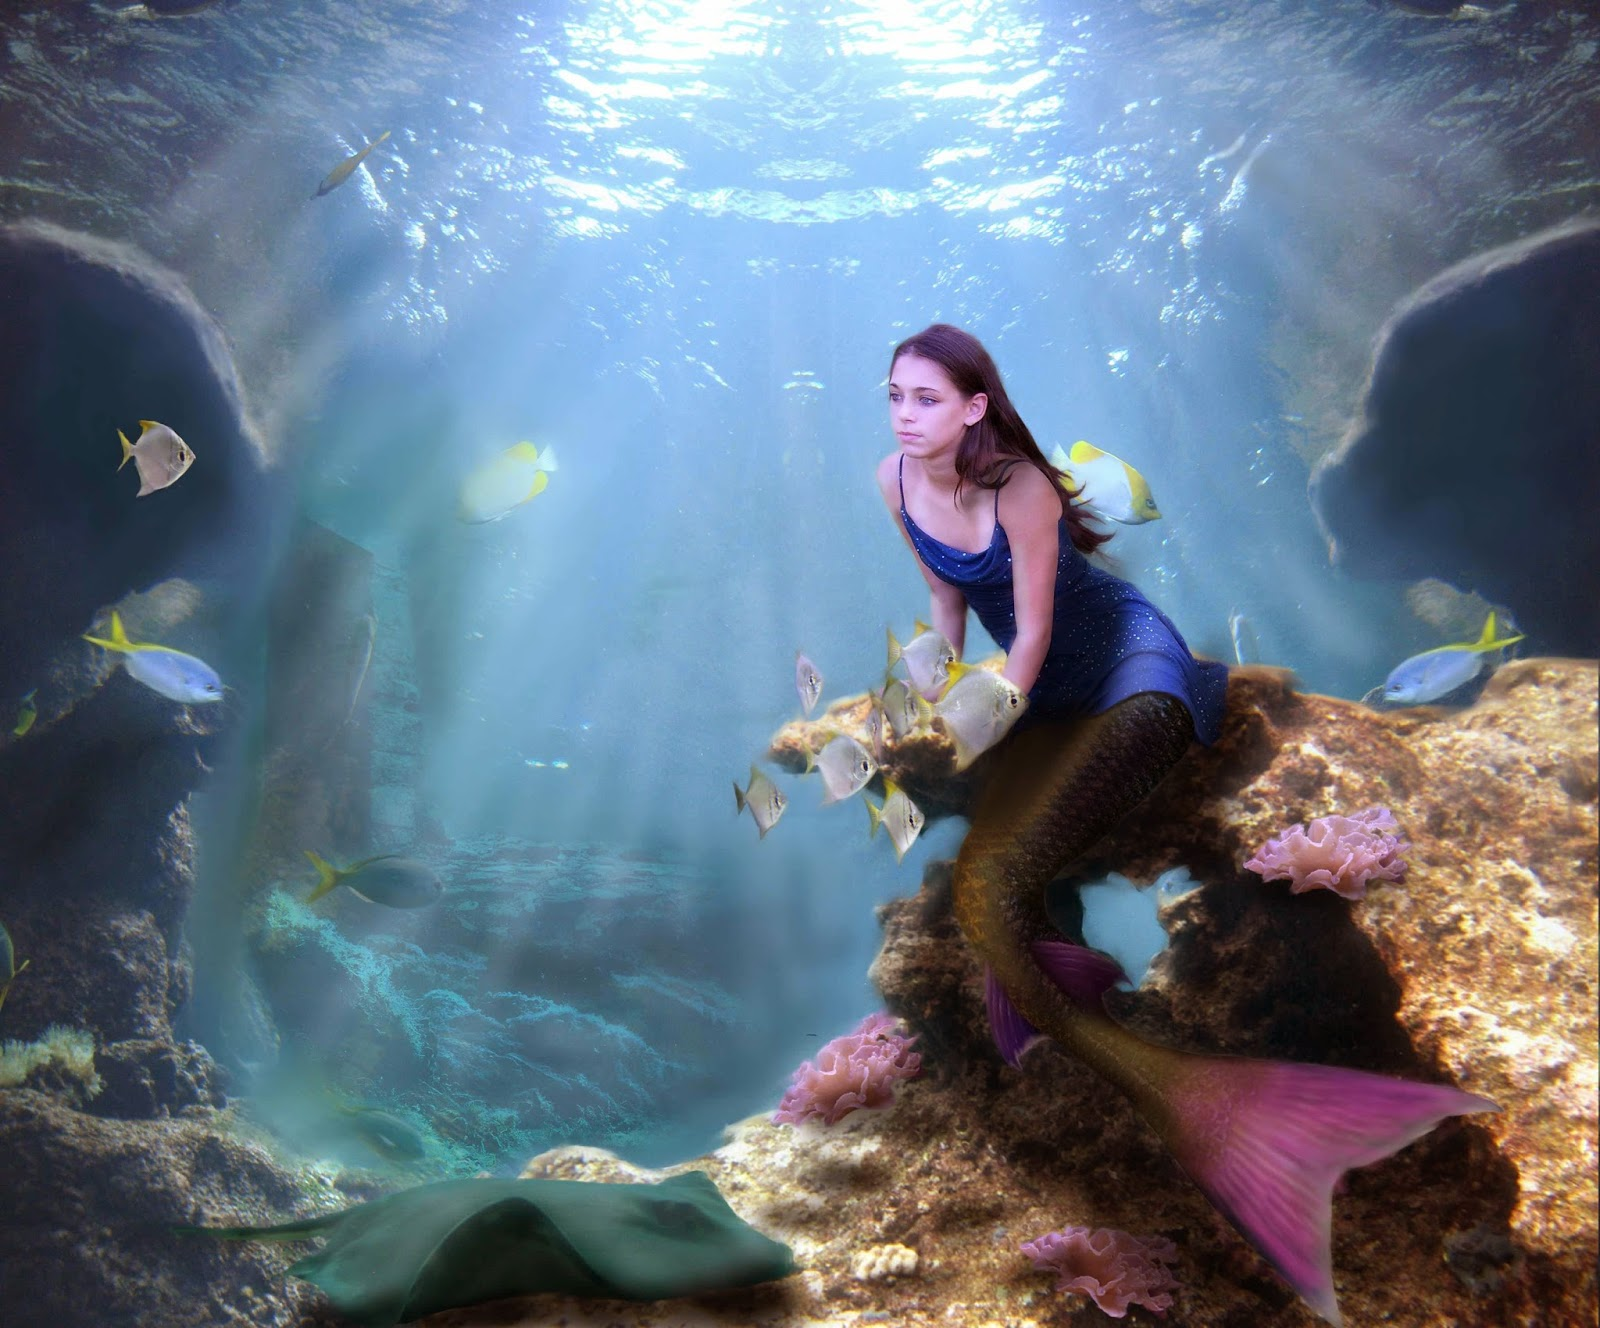 beautiful-girl-mermaid-costume-under-water-sea-photoshoot-images-3500x2905.jpg